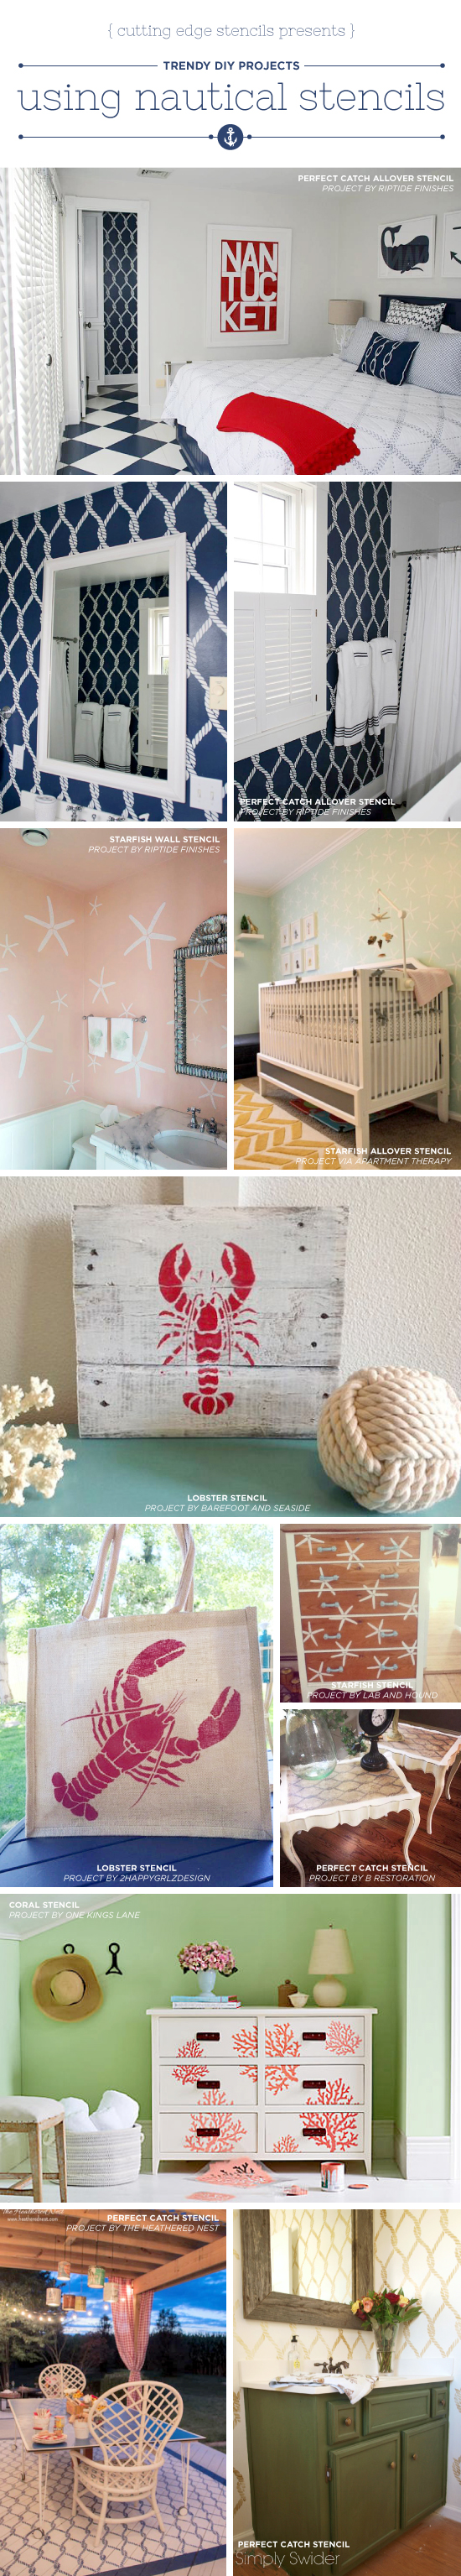 Nautical House Decor Trendy Diy Projects Using Nautical Stencils